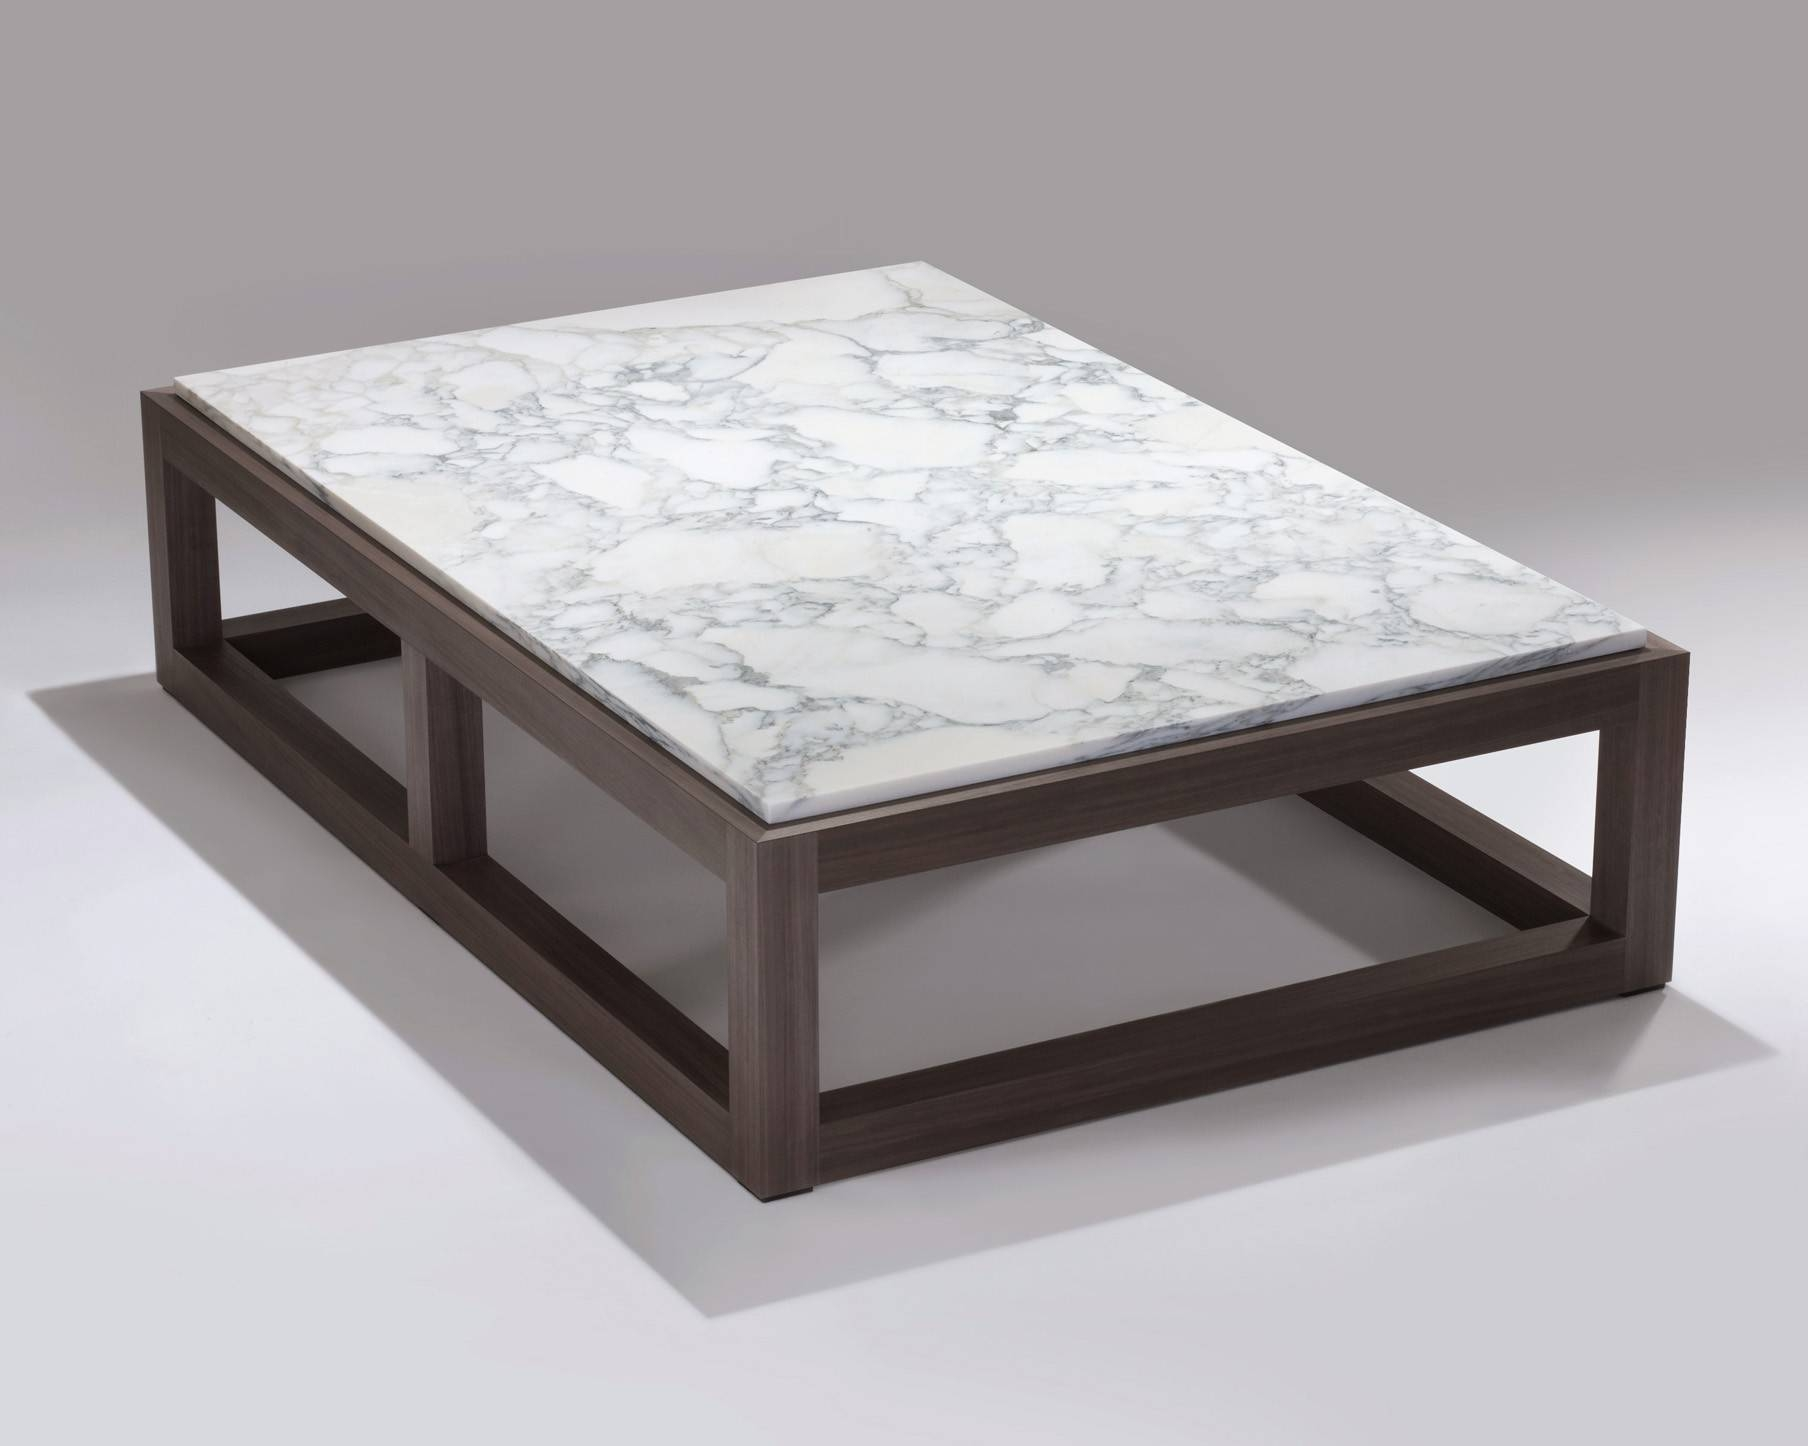 Square Stone Top Coffee Table : Awesome Design Of Stone Top Coffee With Square Stone Coffee Tables (View 27 of 30)